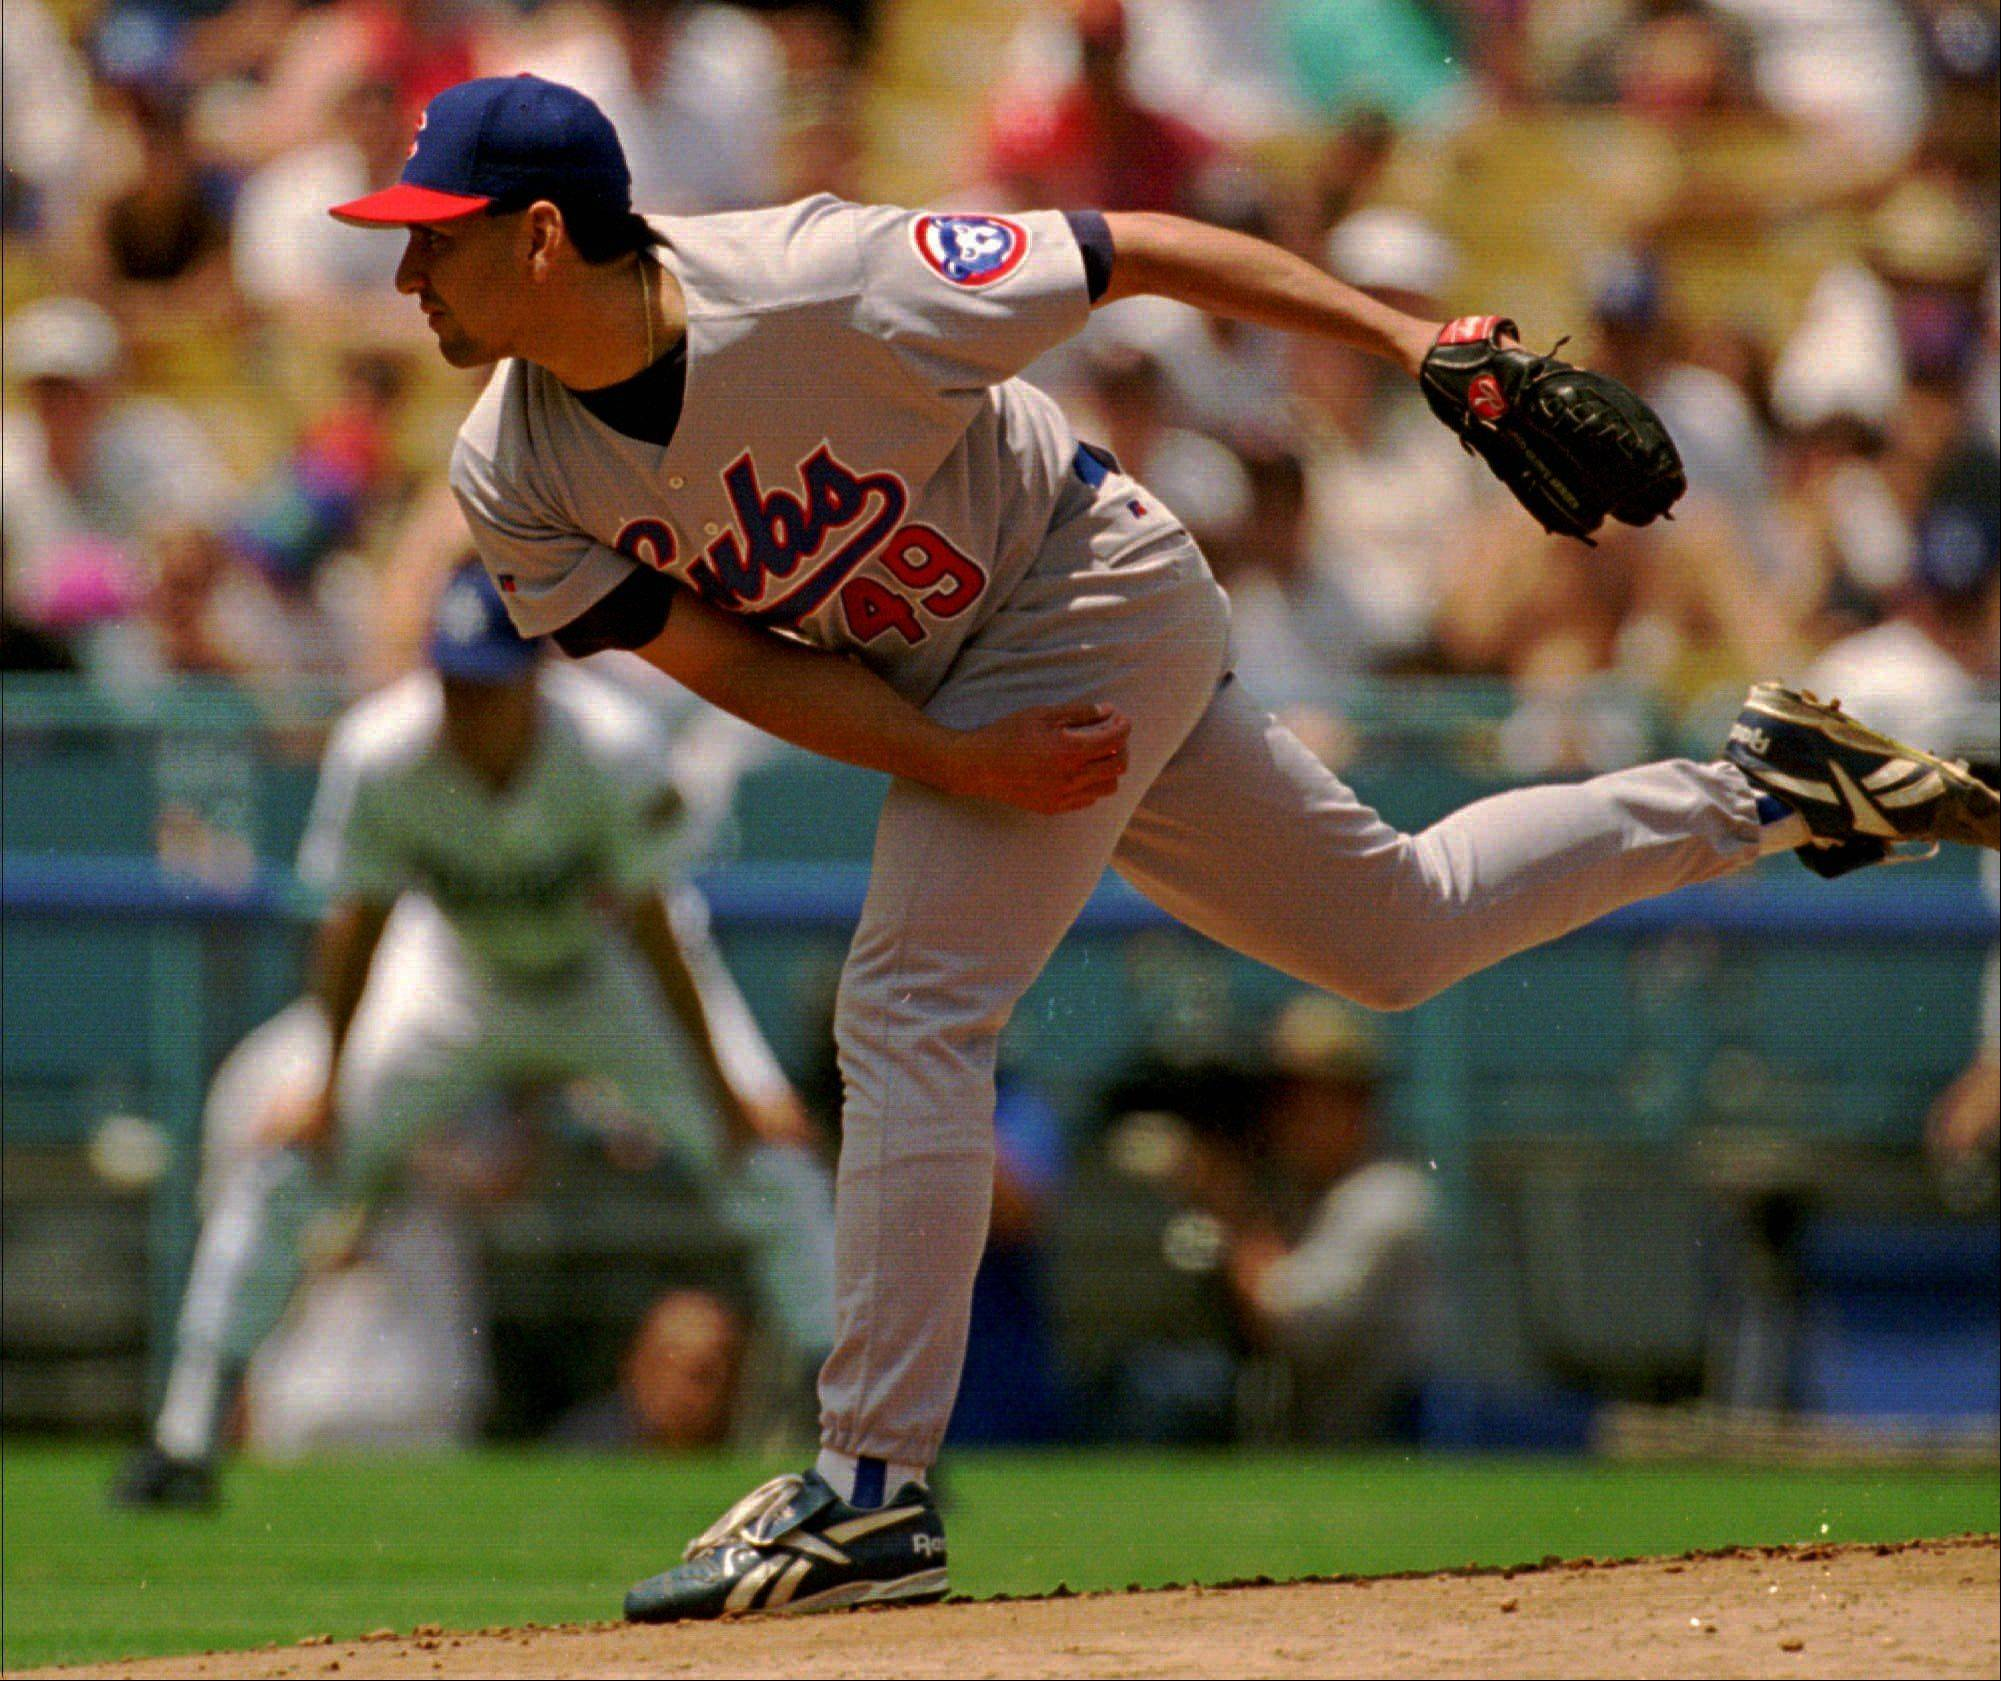 Frank Castillo, who pitched for the Cubs from 1991-97, drowned Sunday near his home in Arizona. Castillo was 44.